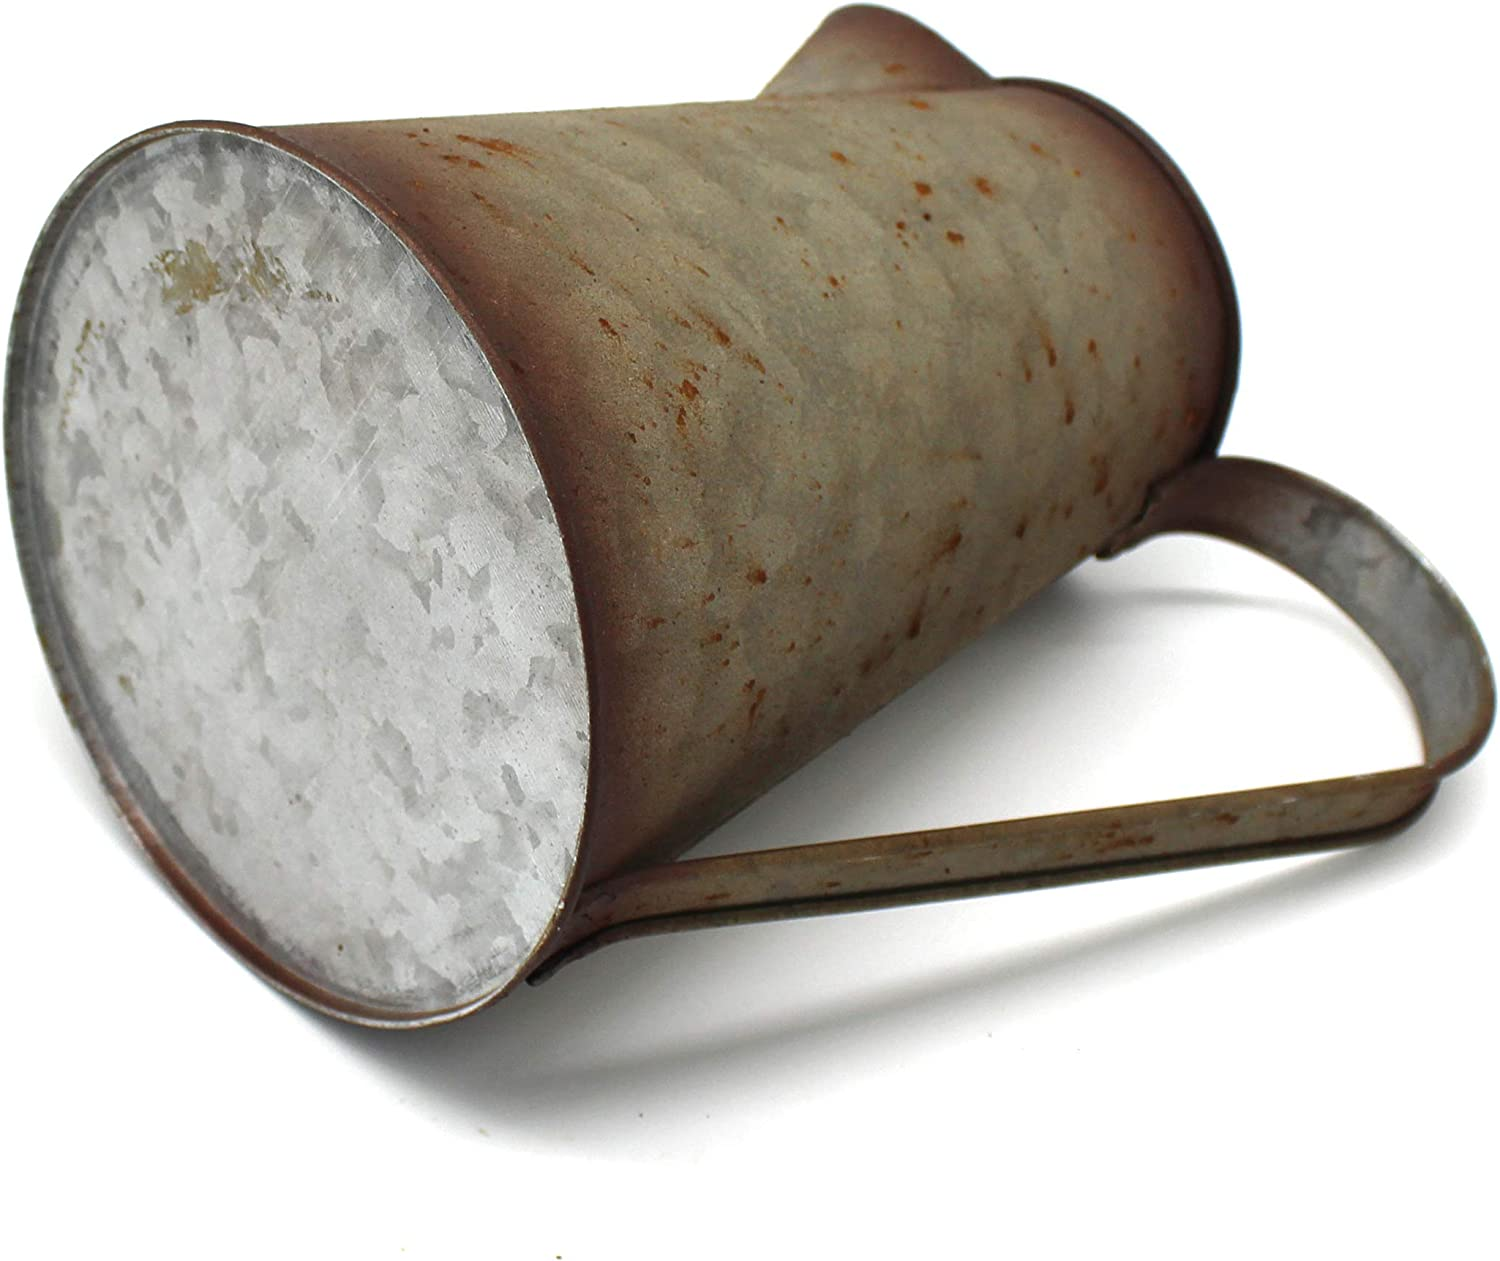 Old Rustic Primitive Watering Can Jug Vase for Home and Garden D/écor. CVHOMEDECO 7 Inch Galvanized Metal Milk Pitcher